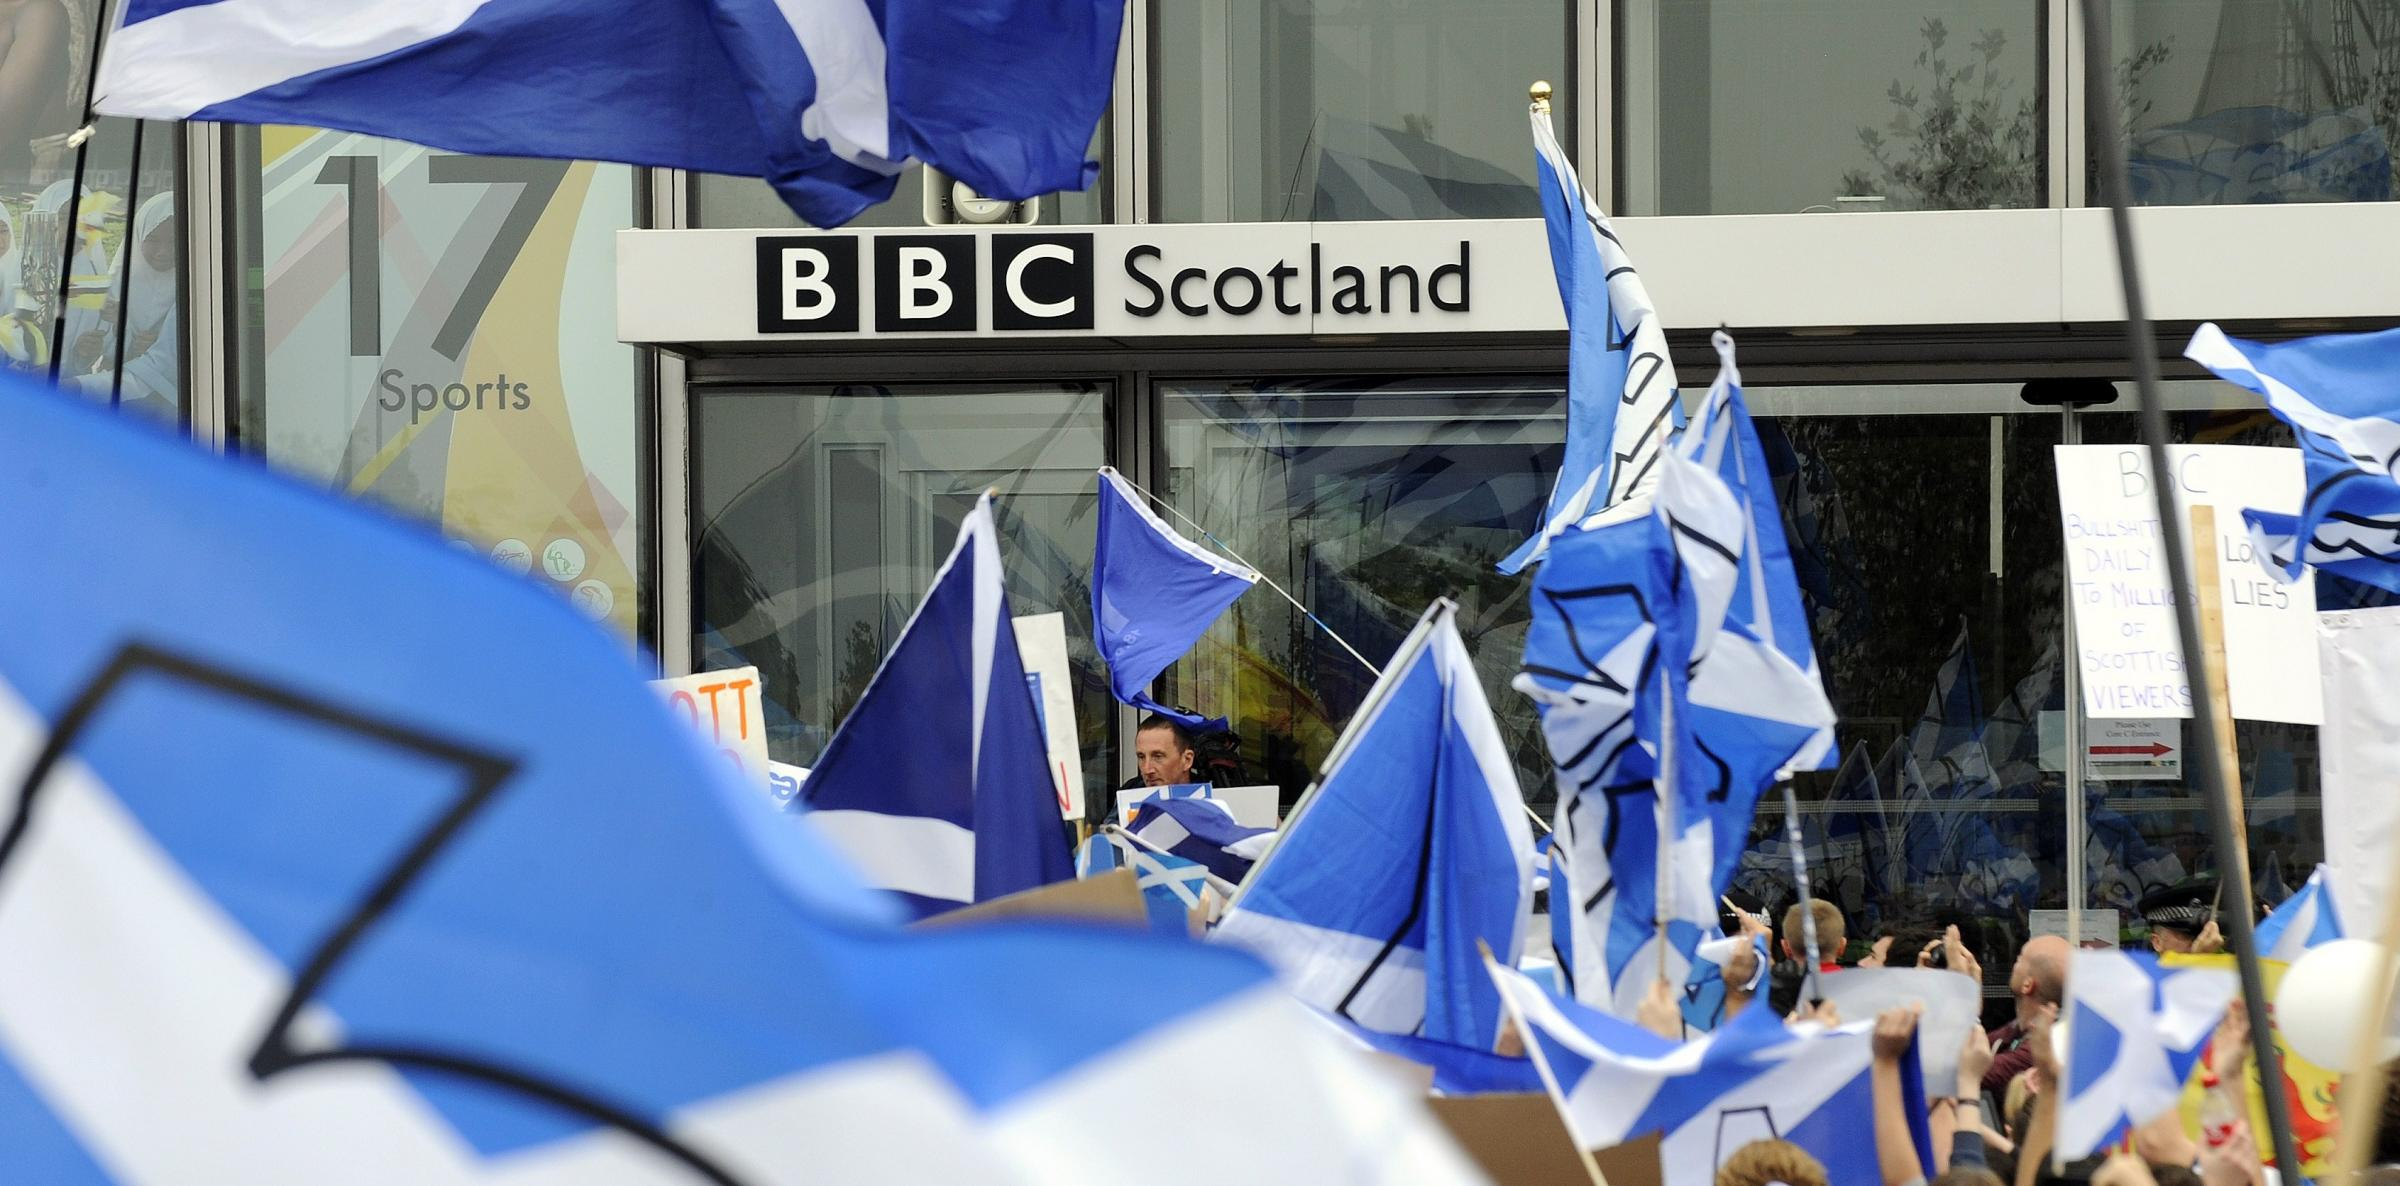 The new channel that it lost with so many people in Scotland in the independence referendum